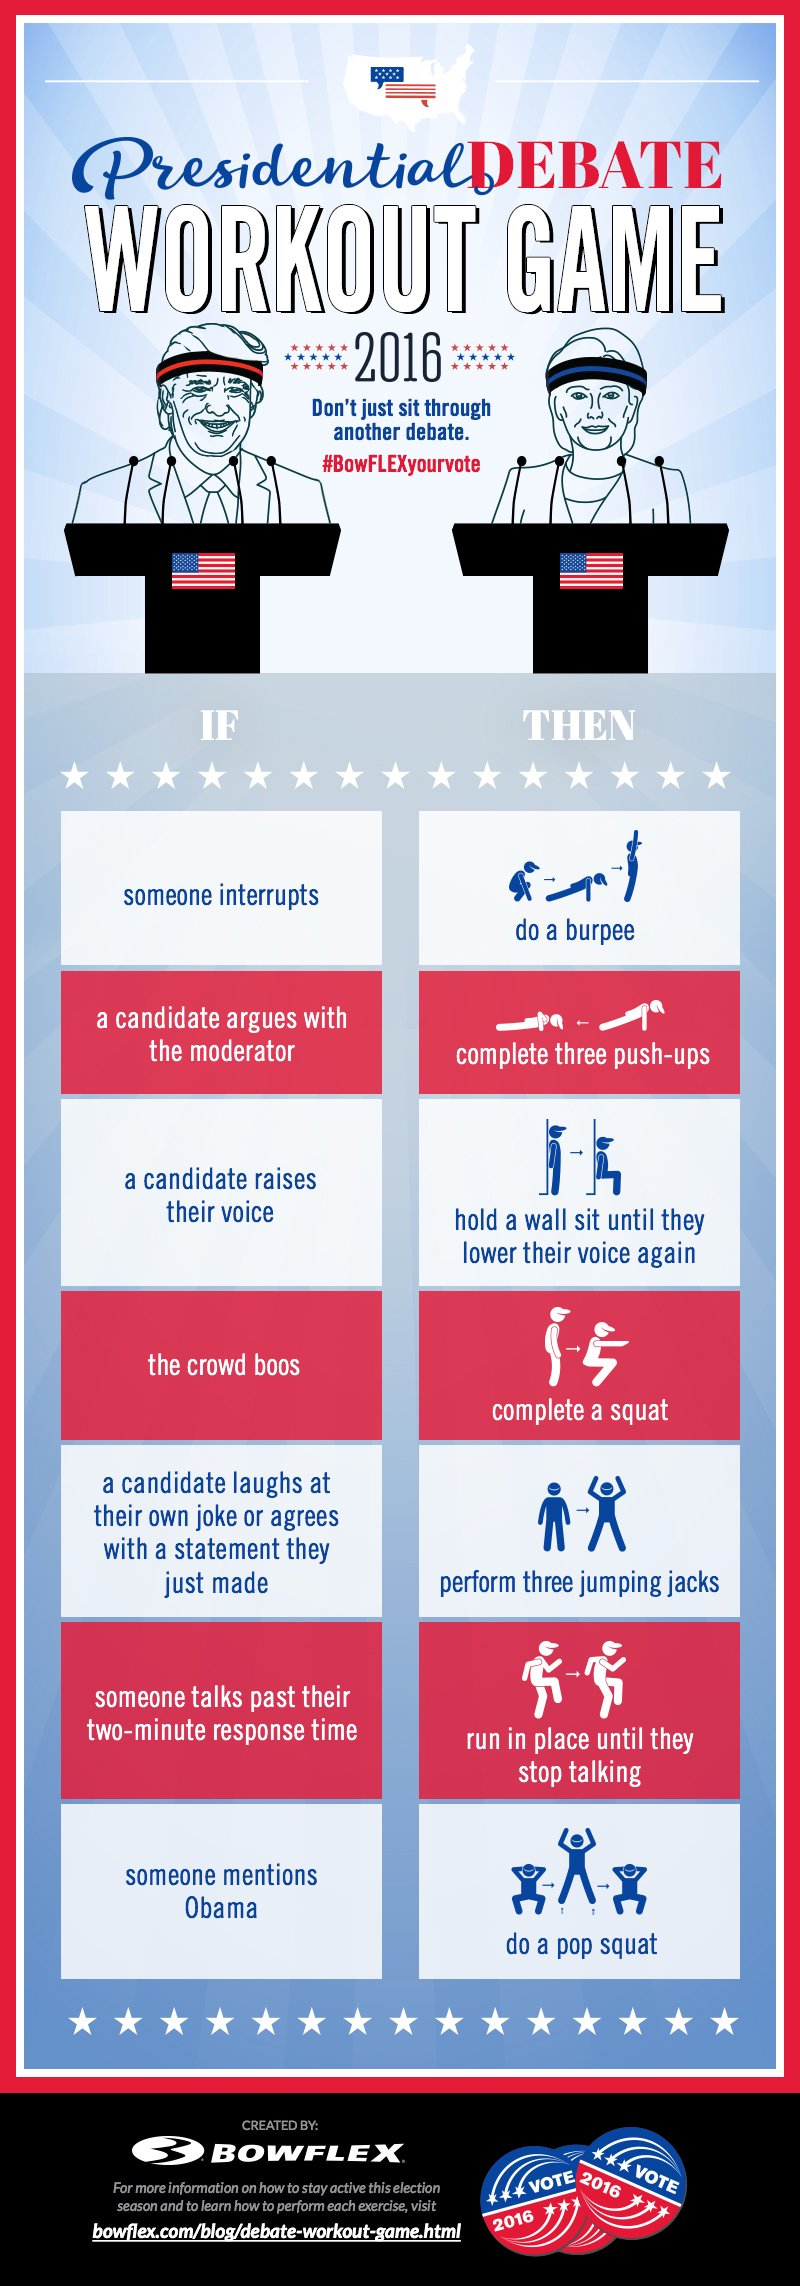 Presidential Debate Workout Game - 2016 - Don't just sit through another debate. #BowFLEXyourvote